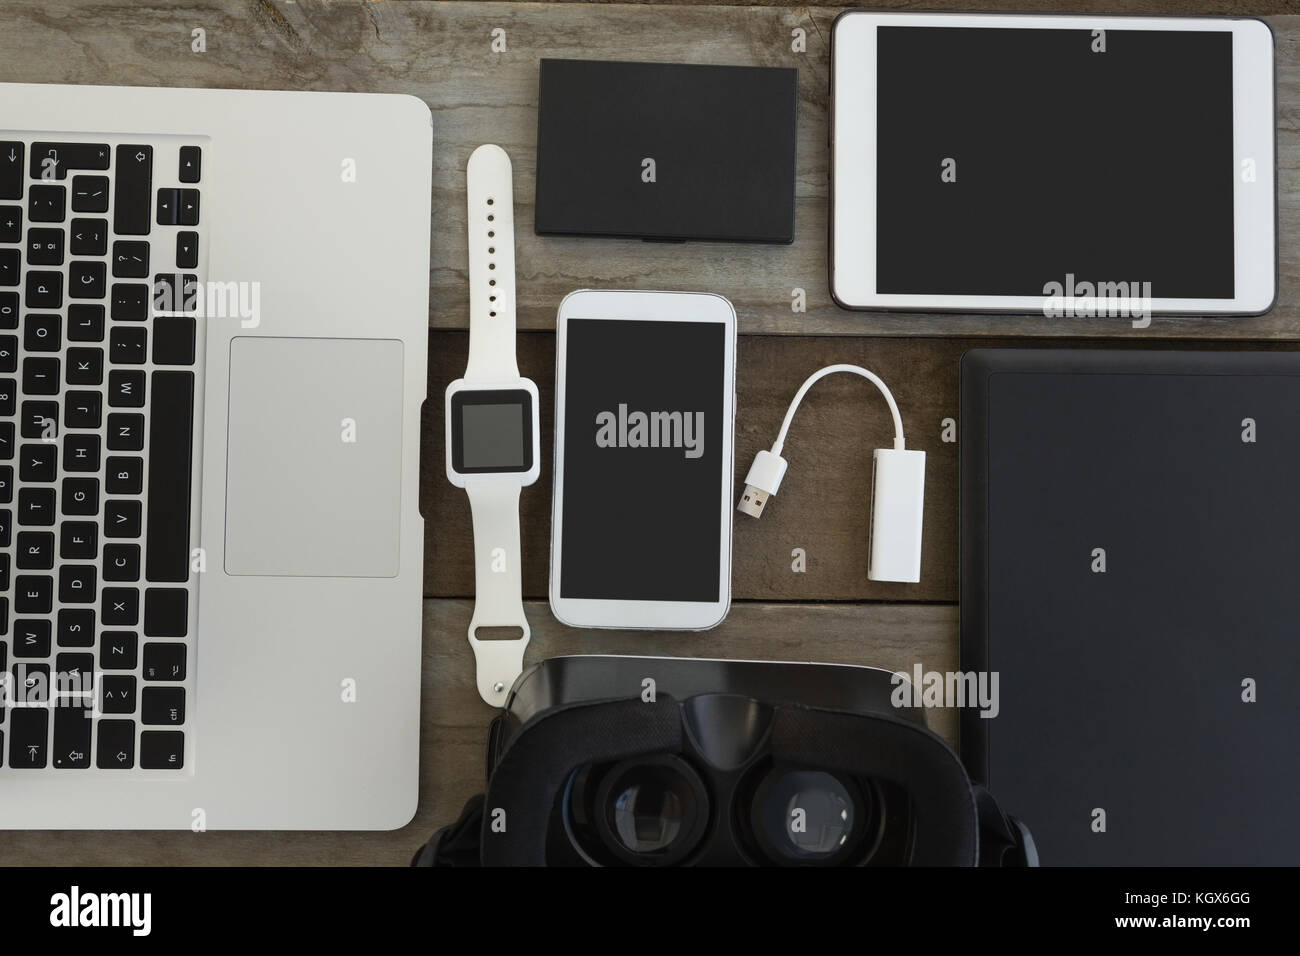 Overhead of various electronic gadgets on wooden surface - Stock Image